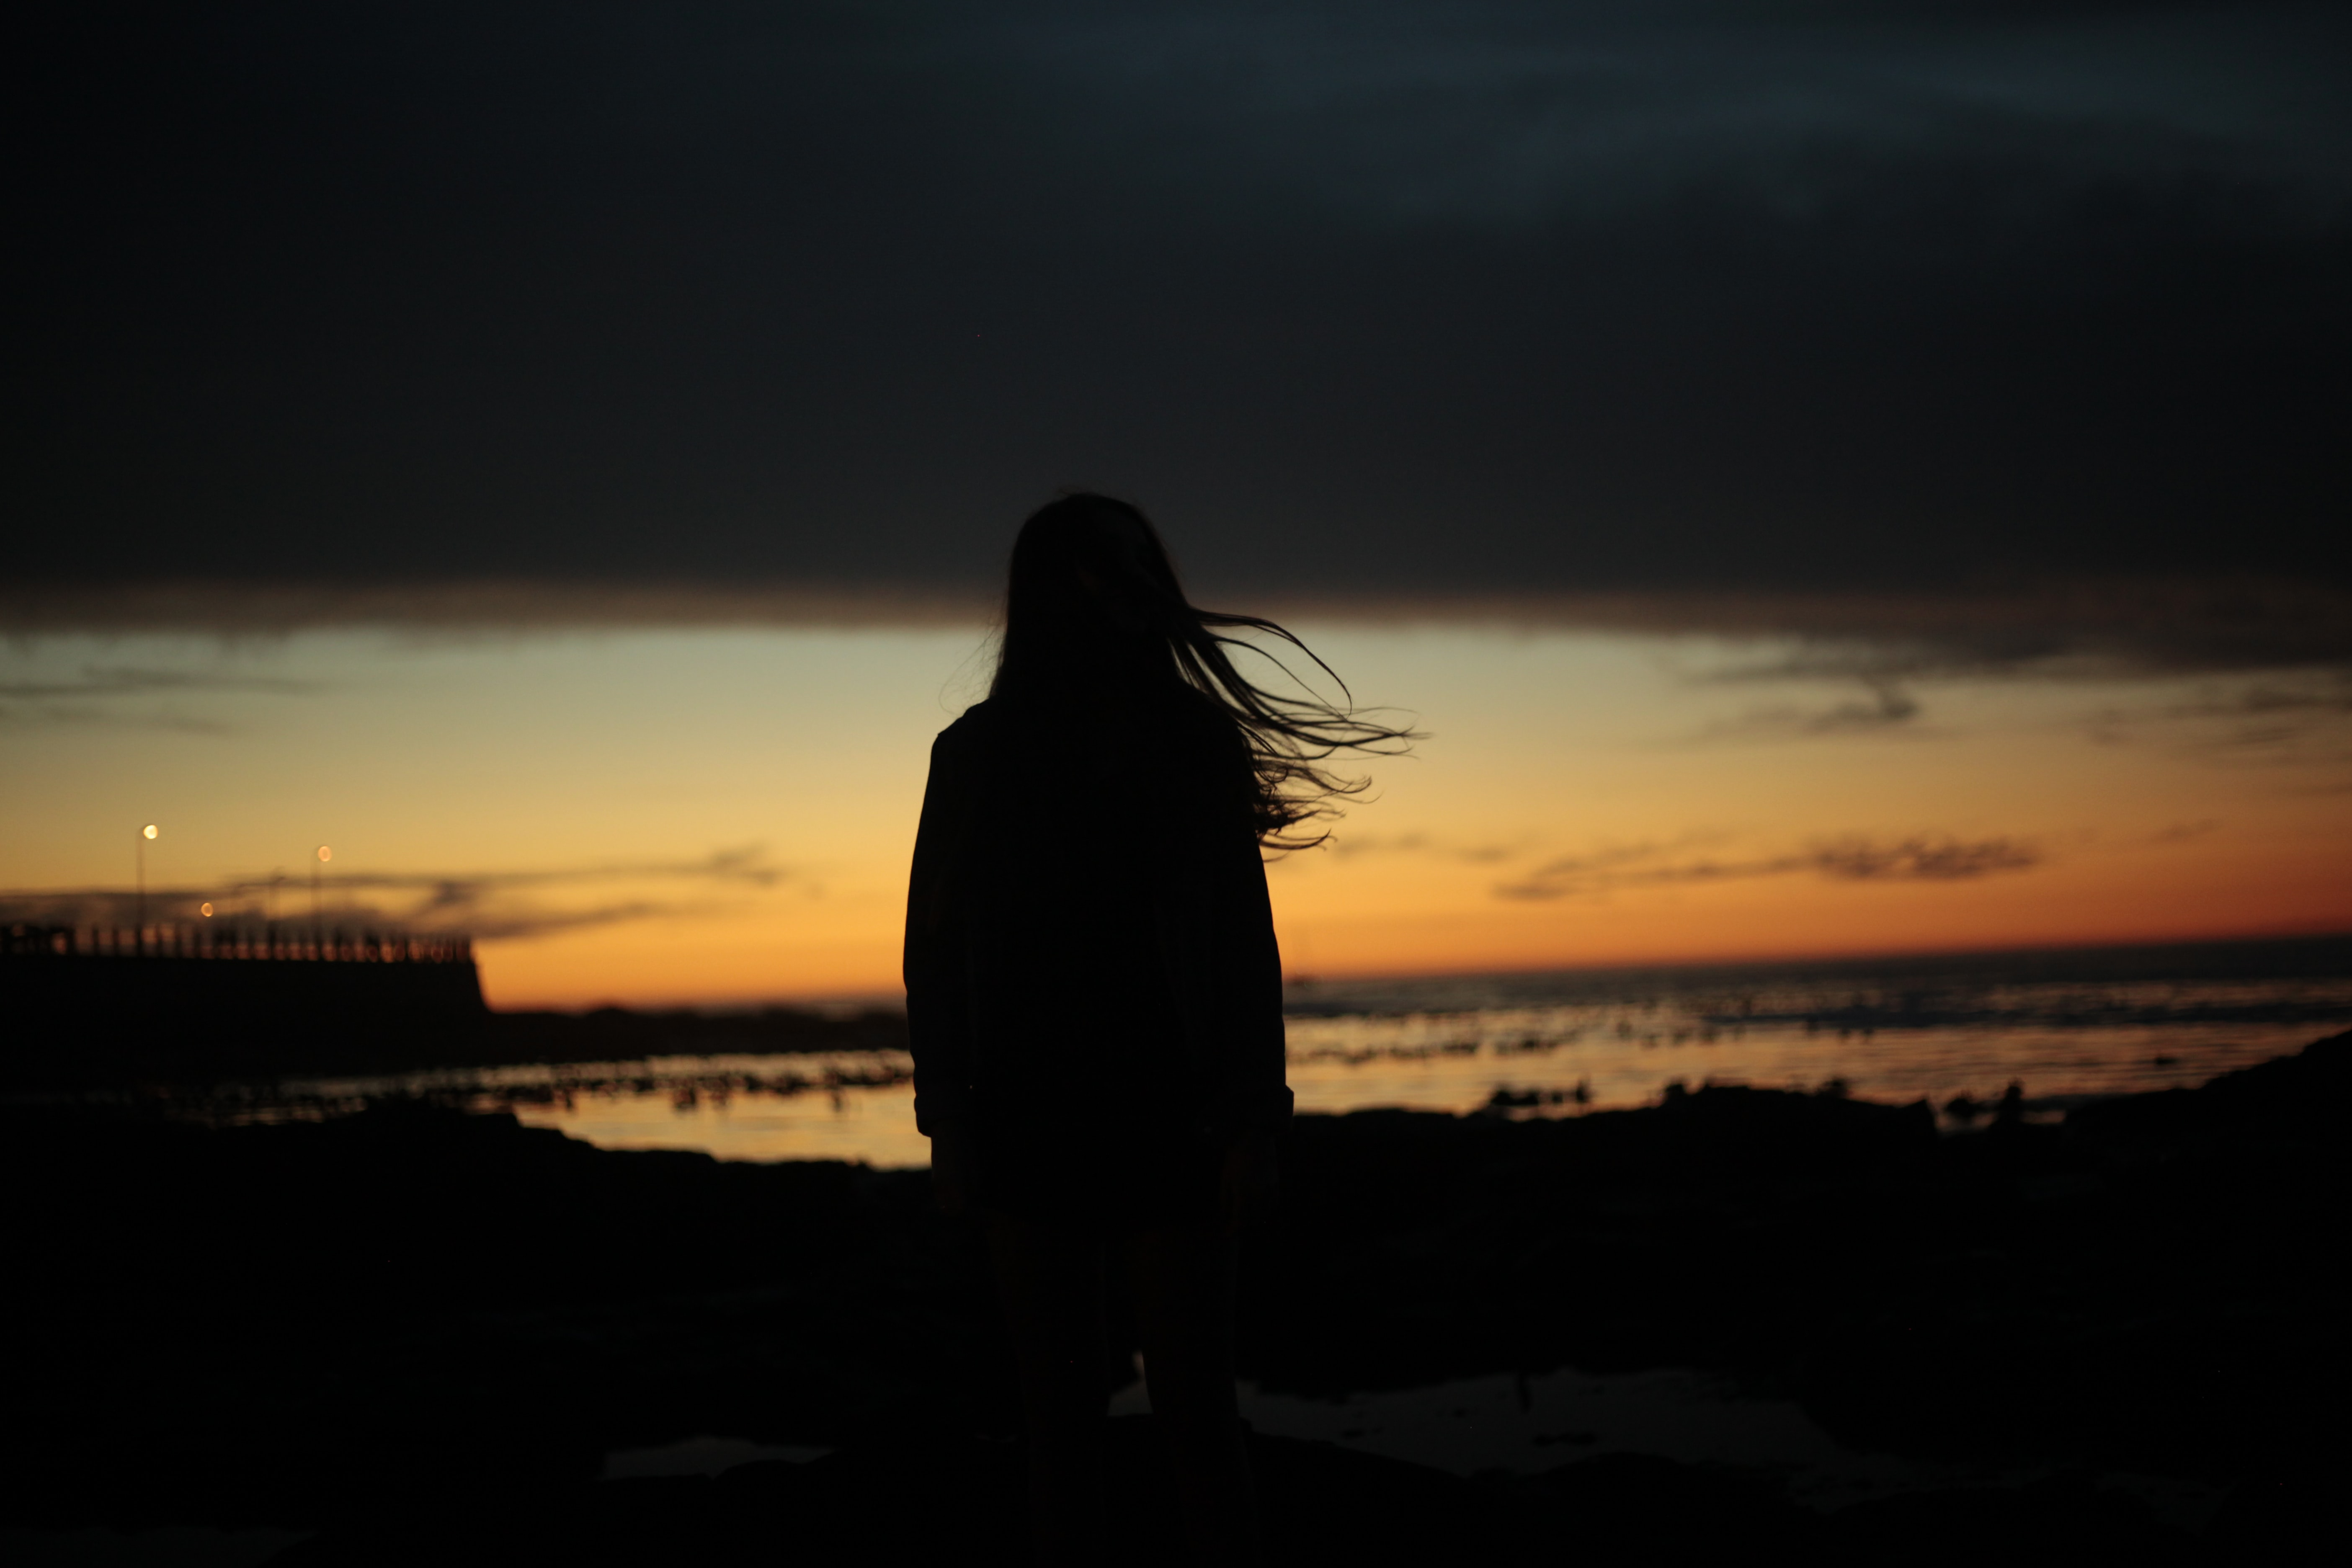 silhouette of woman near beach